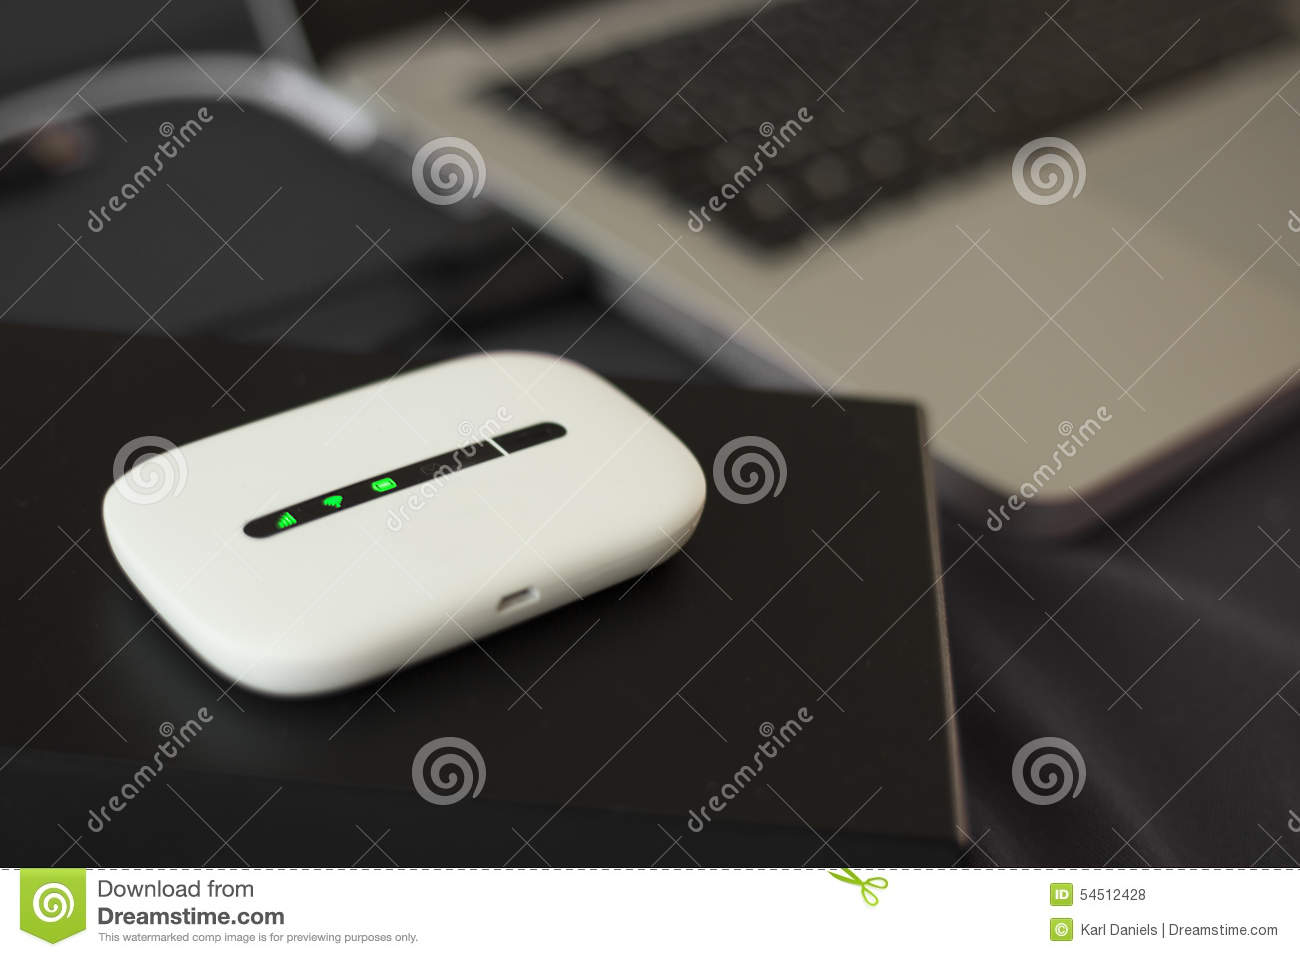 Download 3G Mini Wifi Router stock photo. Image of case, routers - 54512428